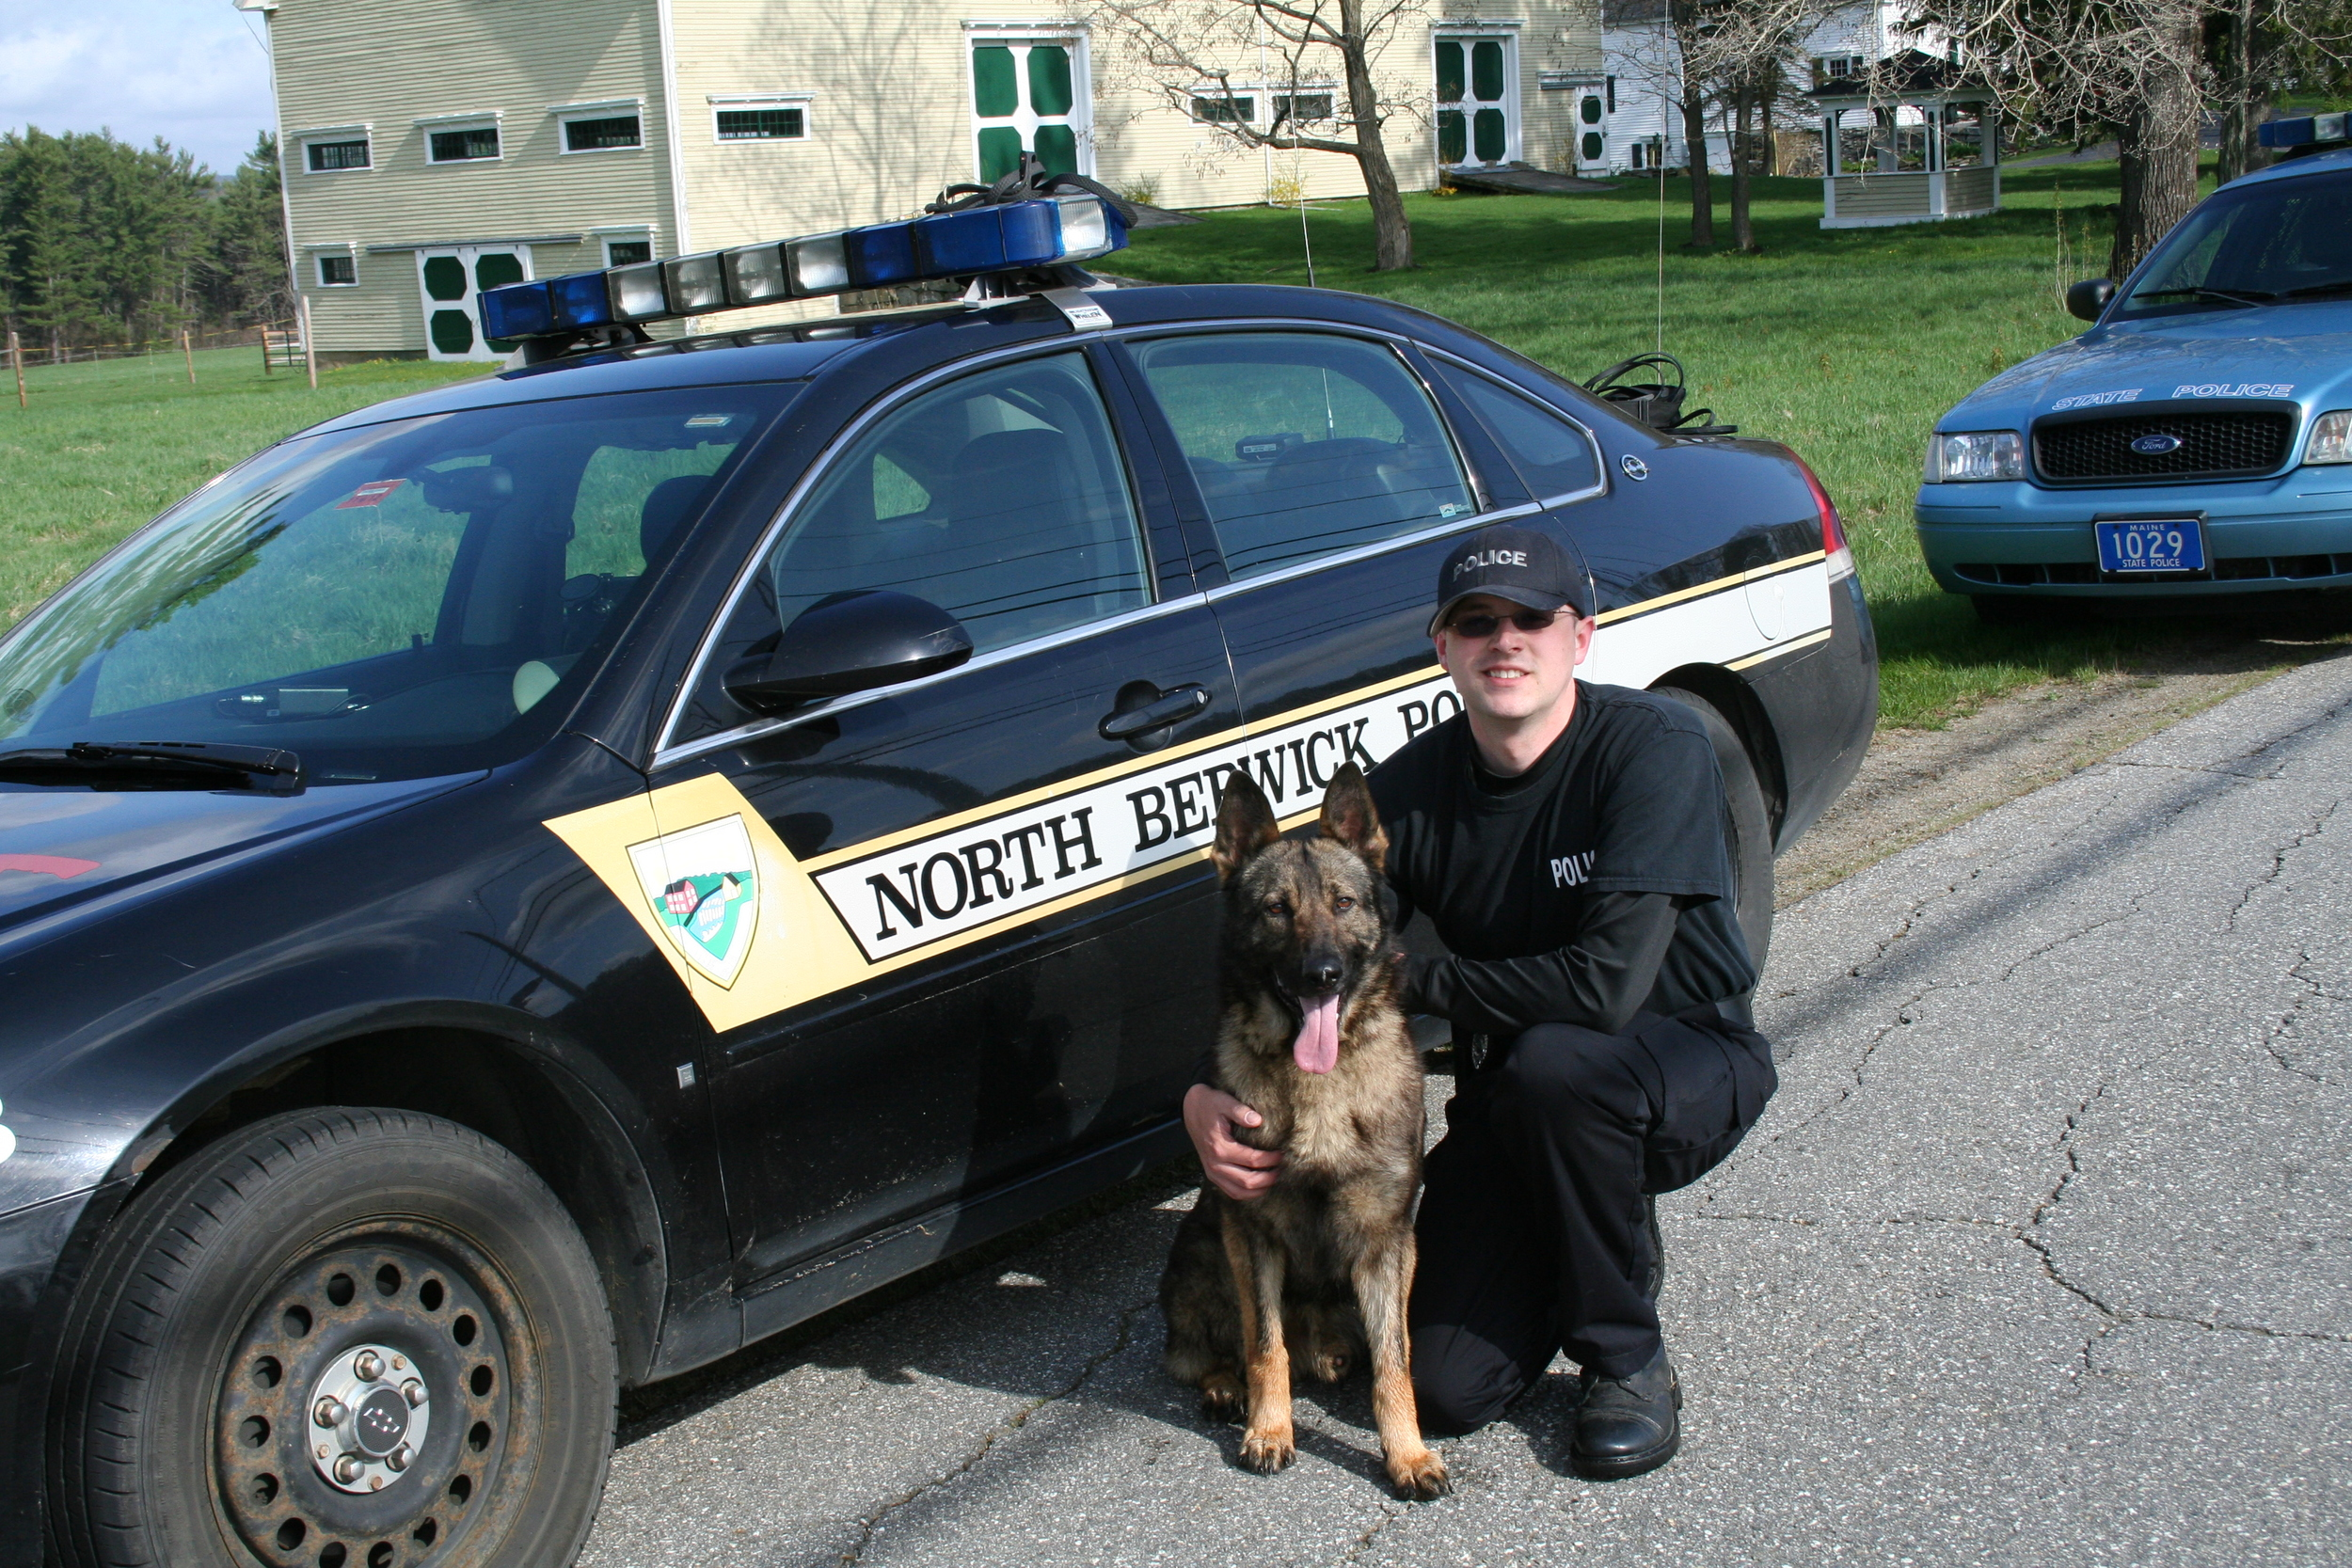 Hoki was sold to the North Berwick Maine Poilce Department and is certified as a Patrol and Narcotic Detection K9.  He is seen here with his handler, Officer Dan Pelkey .       My Department came to Von Woden Kennels looking for a dual-purpose canine, the first in our Department's history.  We sat down and discussed with Dave that our primary concern was to have a dog that was not only an effective crime deterrent, but one that was approachable and could be used for community relations projects; we didn't want a dog that the community would be afraid of.  Dave matched us up with Hoki who was the perfect dog for our needs.  Hoki has not only been successfully deployed in a law enforecment role, but has also been brought into a summer camp to introduce local kids to police canines.   - Officer Dan Pelkey